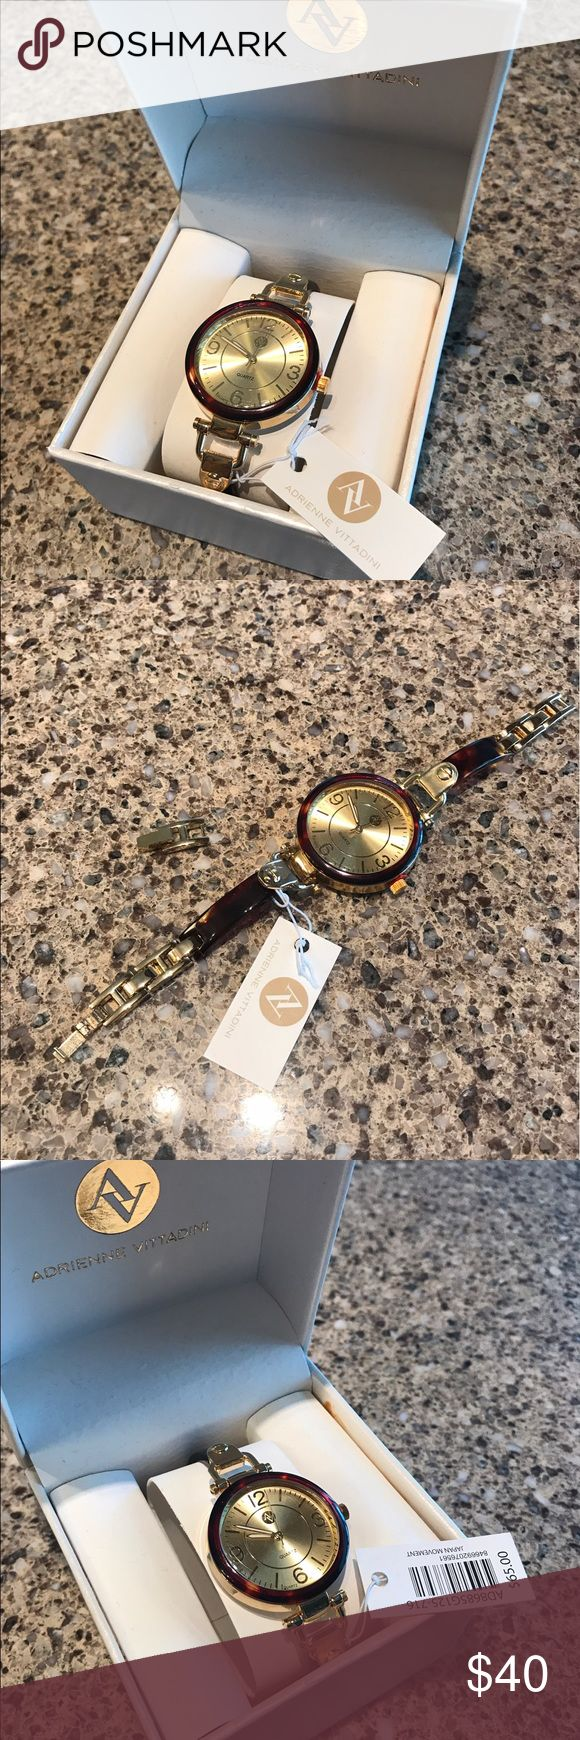 NWT $65 Adrienne Vittadini watch New with tag $65 Adrienne Vittadini watch. Absolutely stunning. Removable link. In box. Adrienne Vittadini Accessories Watches